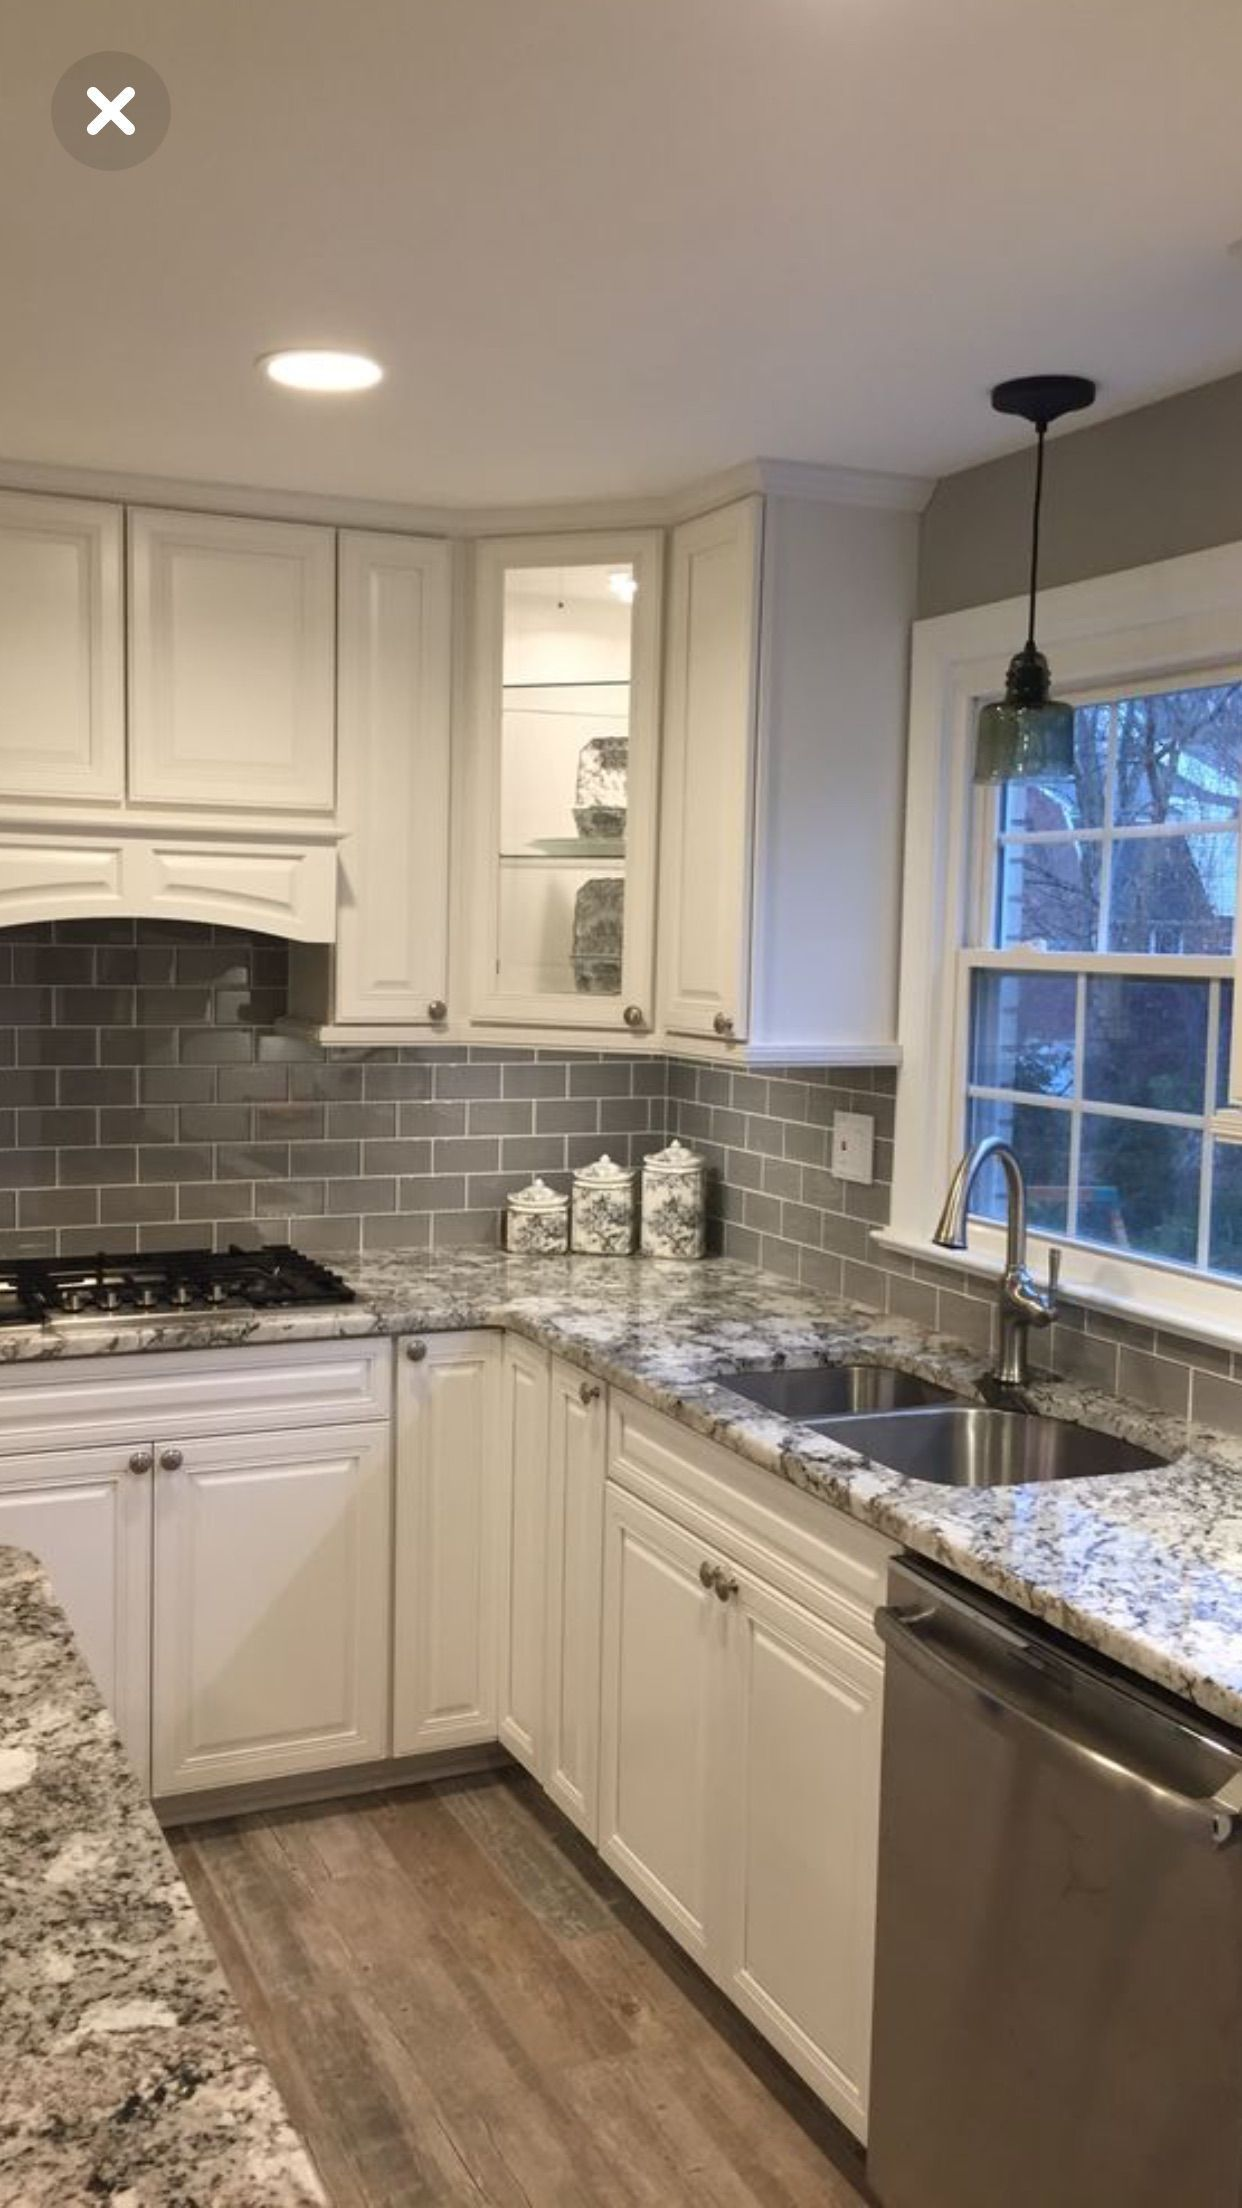 51 Unique Kitchen Cabinet Ideas To Get You Started Dream